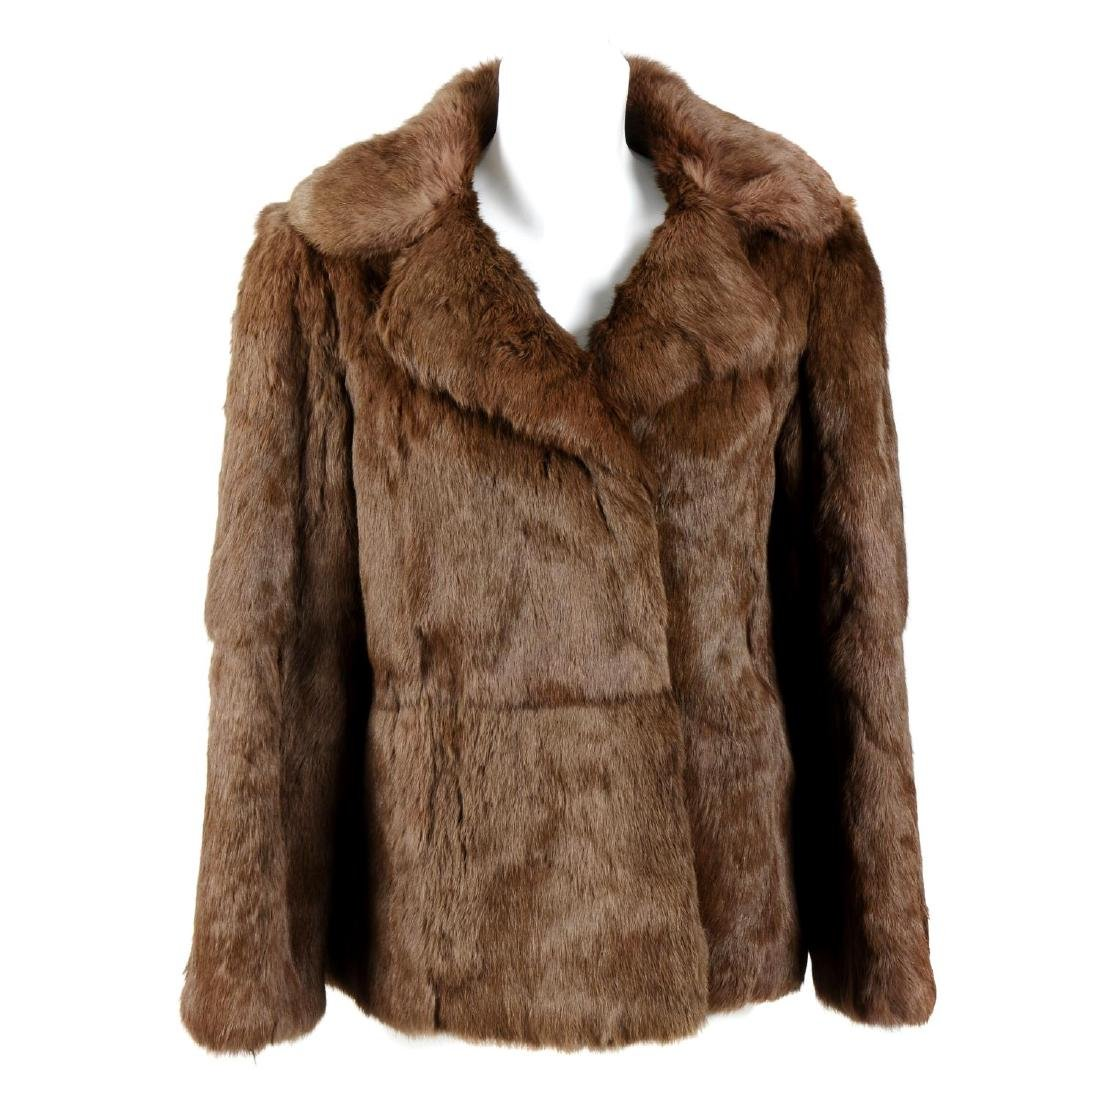 Two coney fur jackets and a coney fur coat. To include